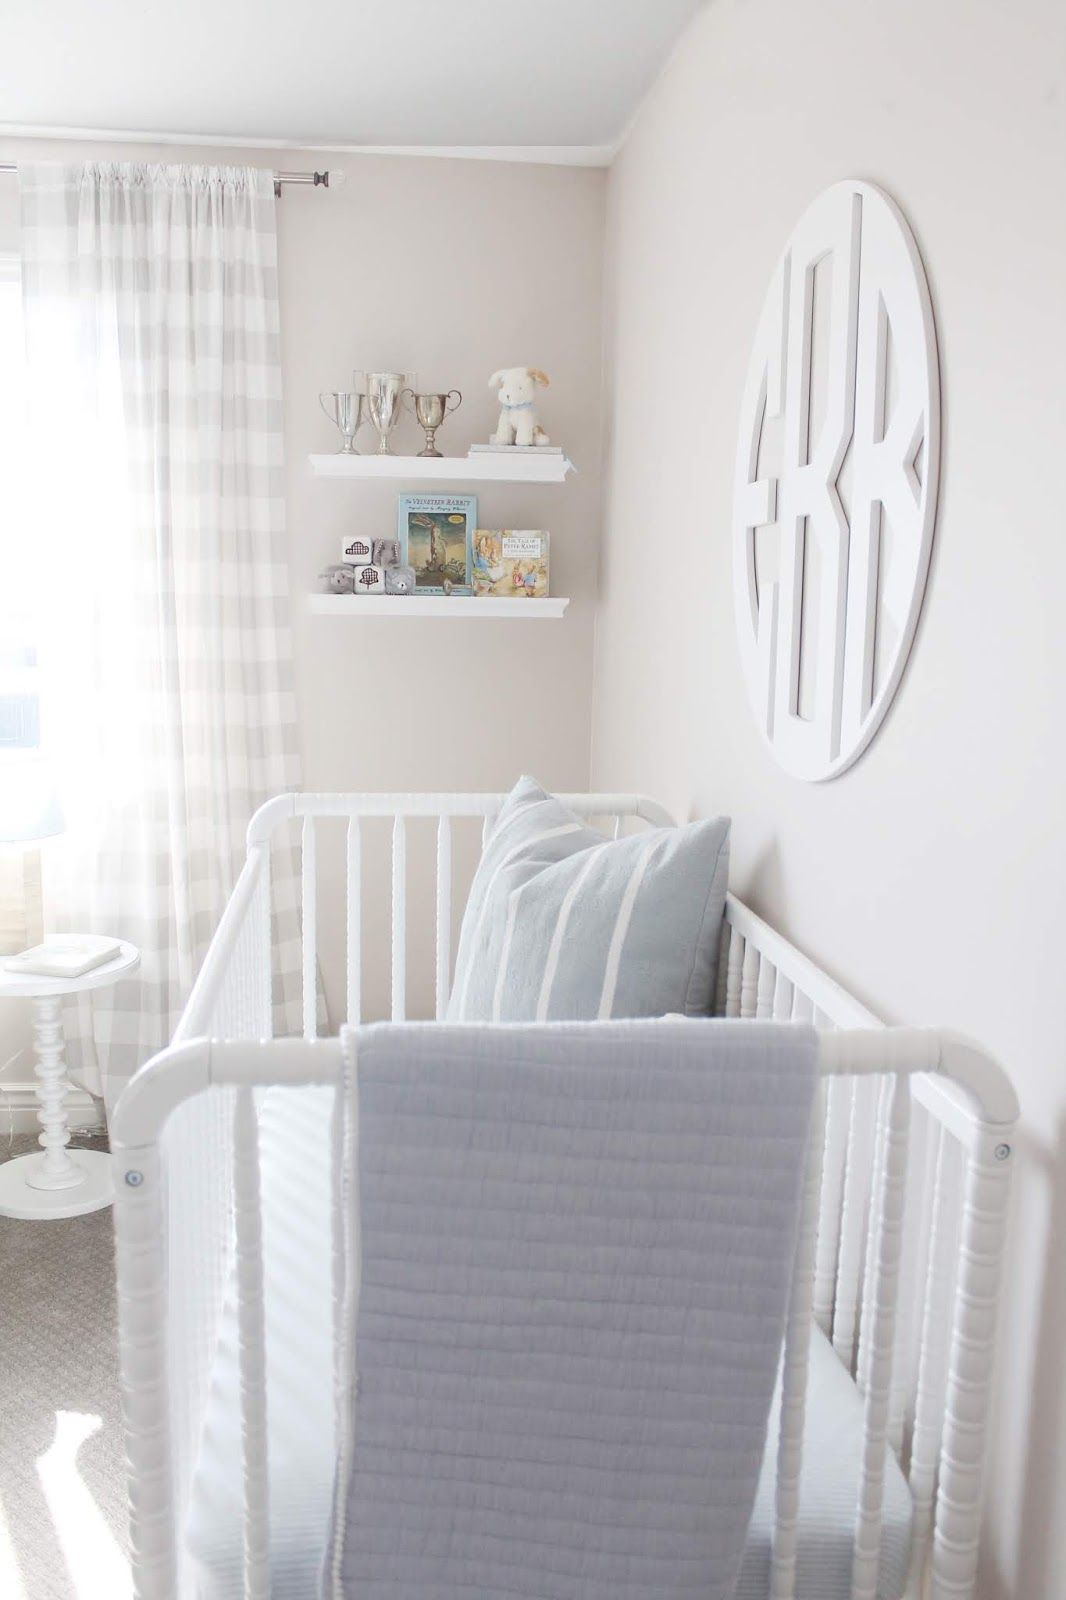 Nursery Reveal! (A Classic Baby Boy Nursery)